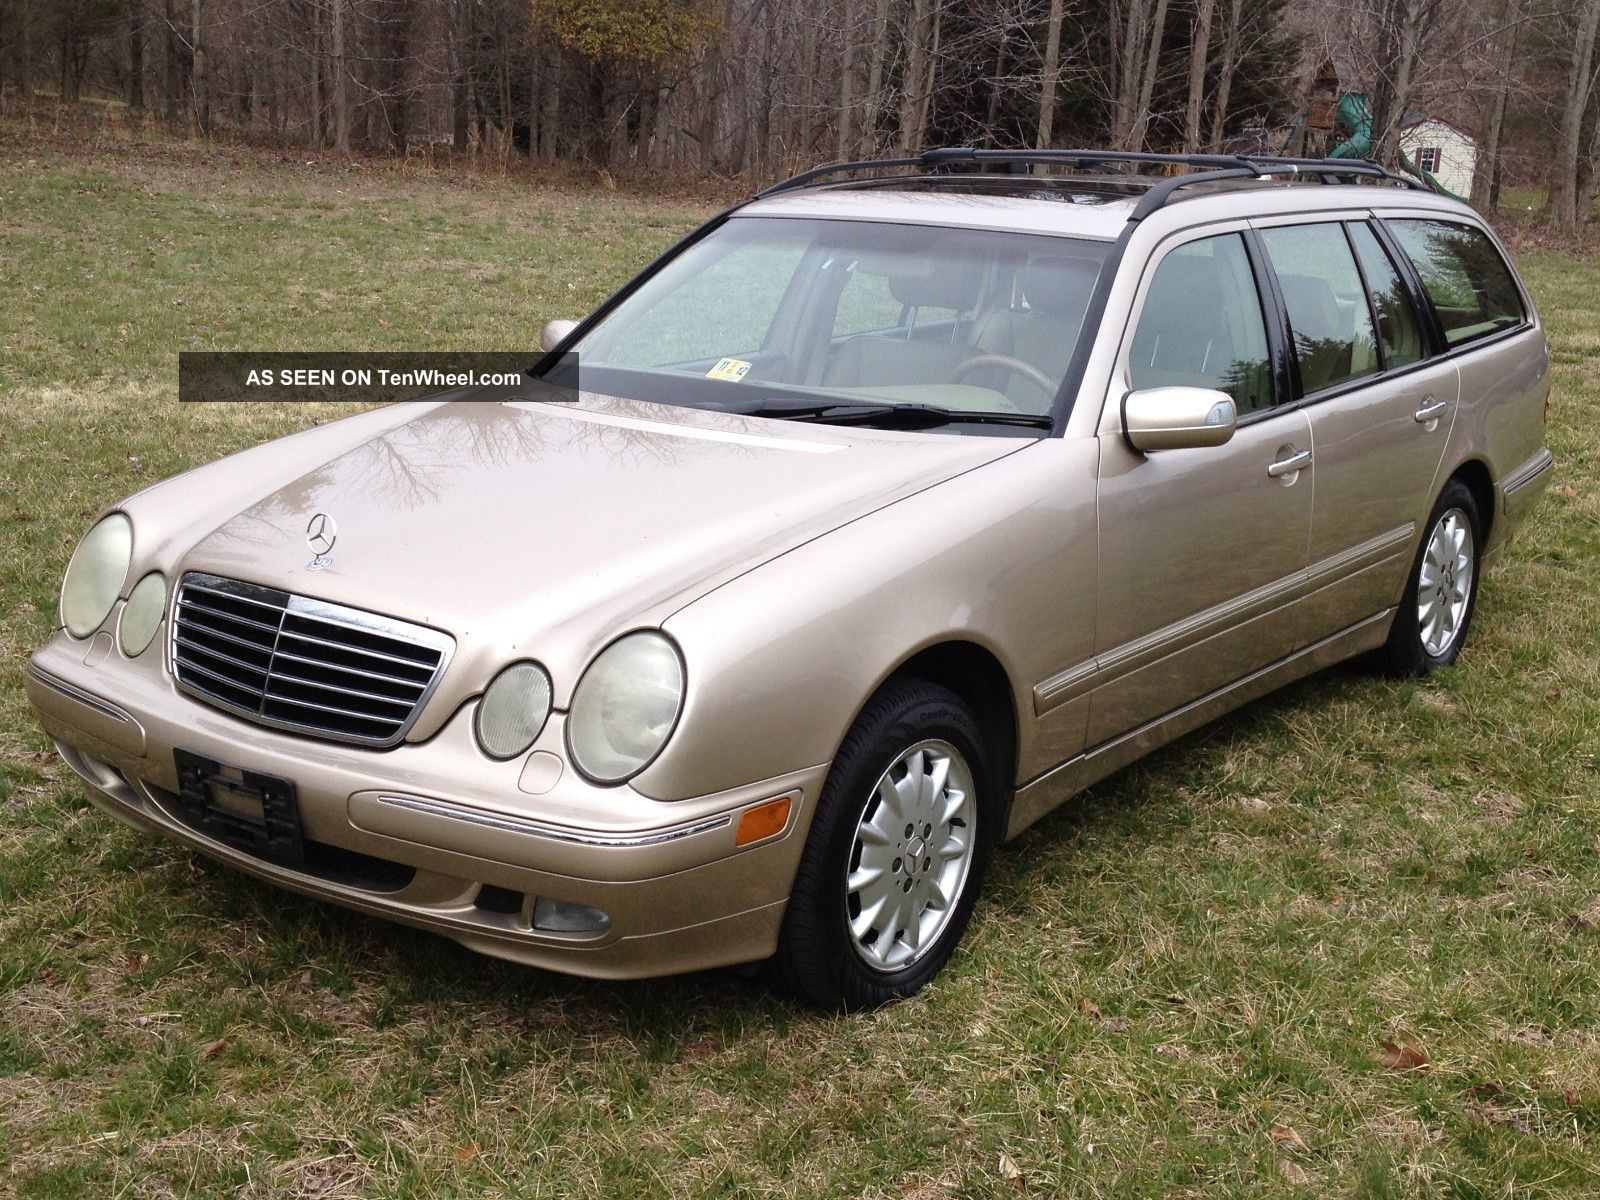 2002 mercedes benz e320 4matic wagon for Mercedes benz wagons